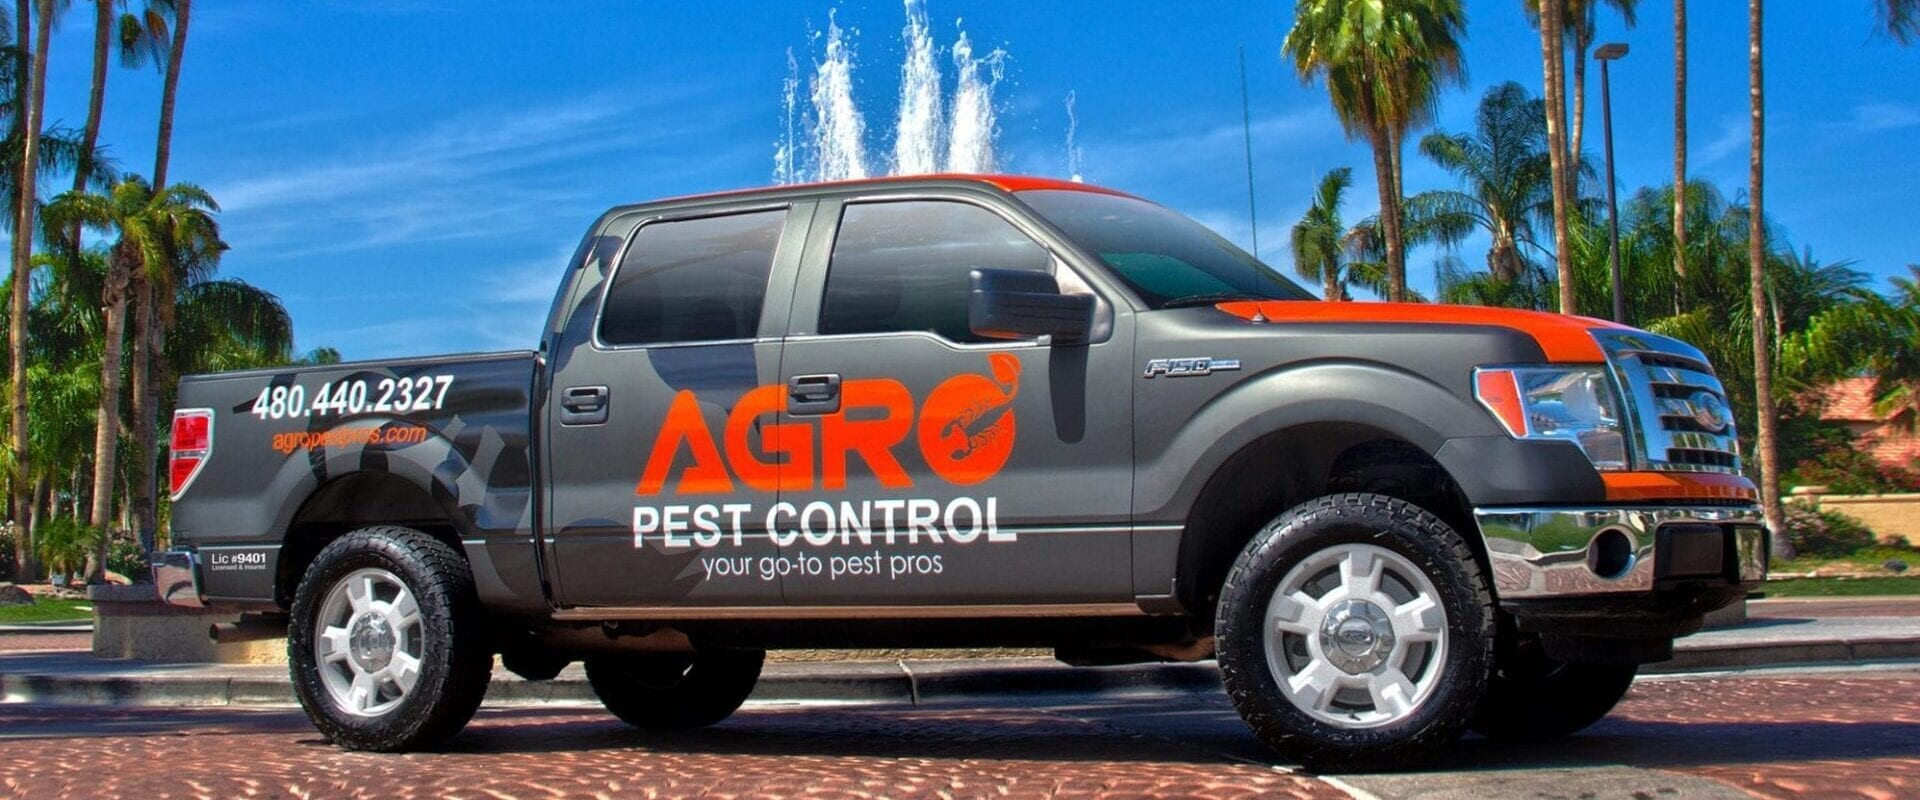 Vehicle Wrap for Pest Control Truck